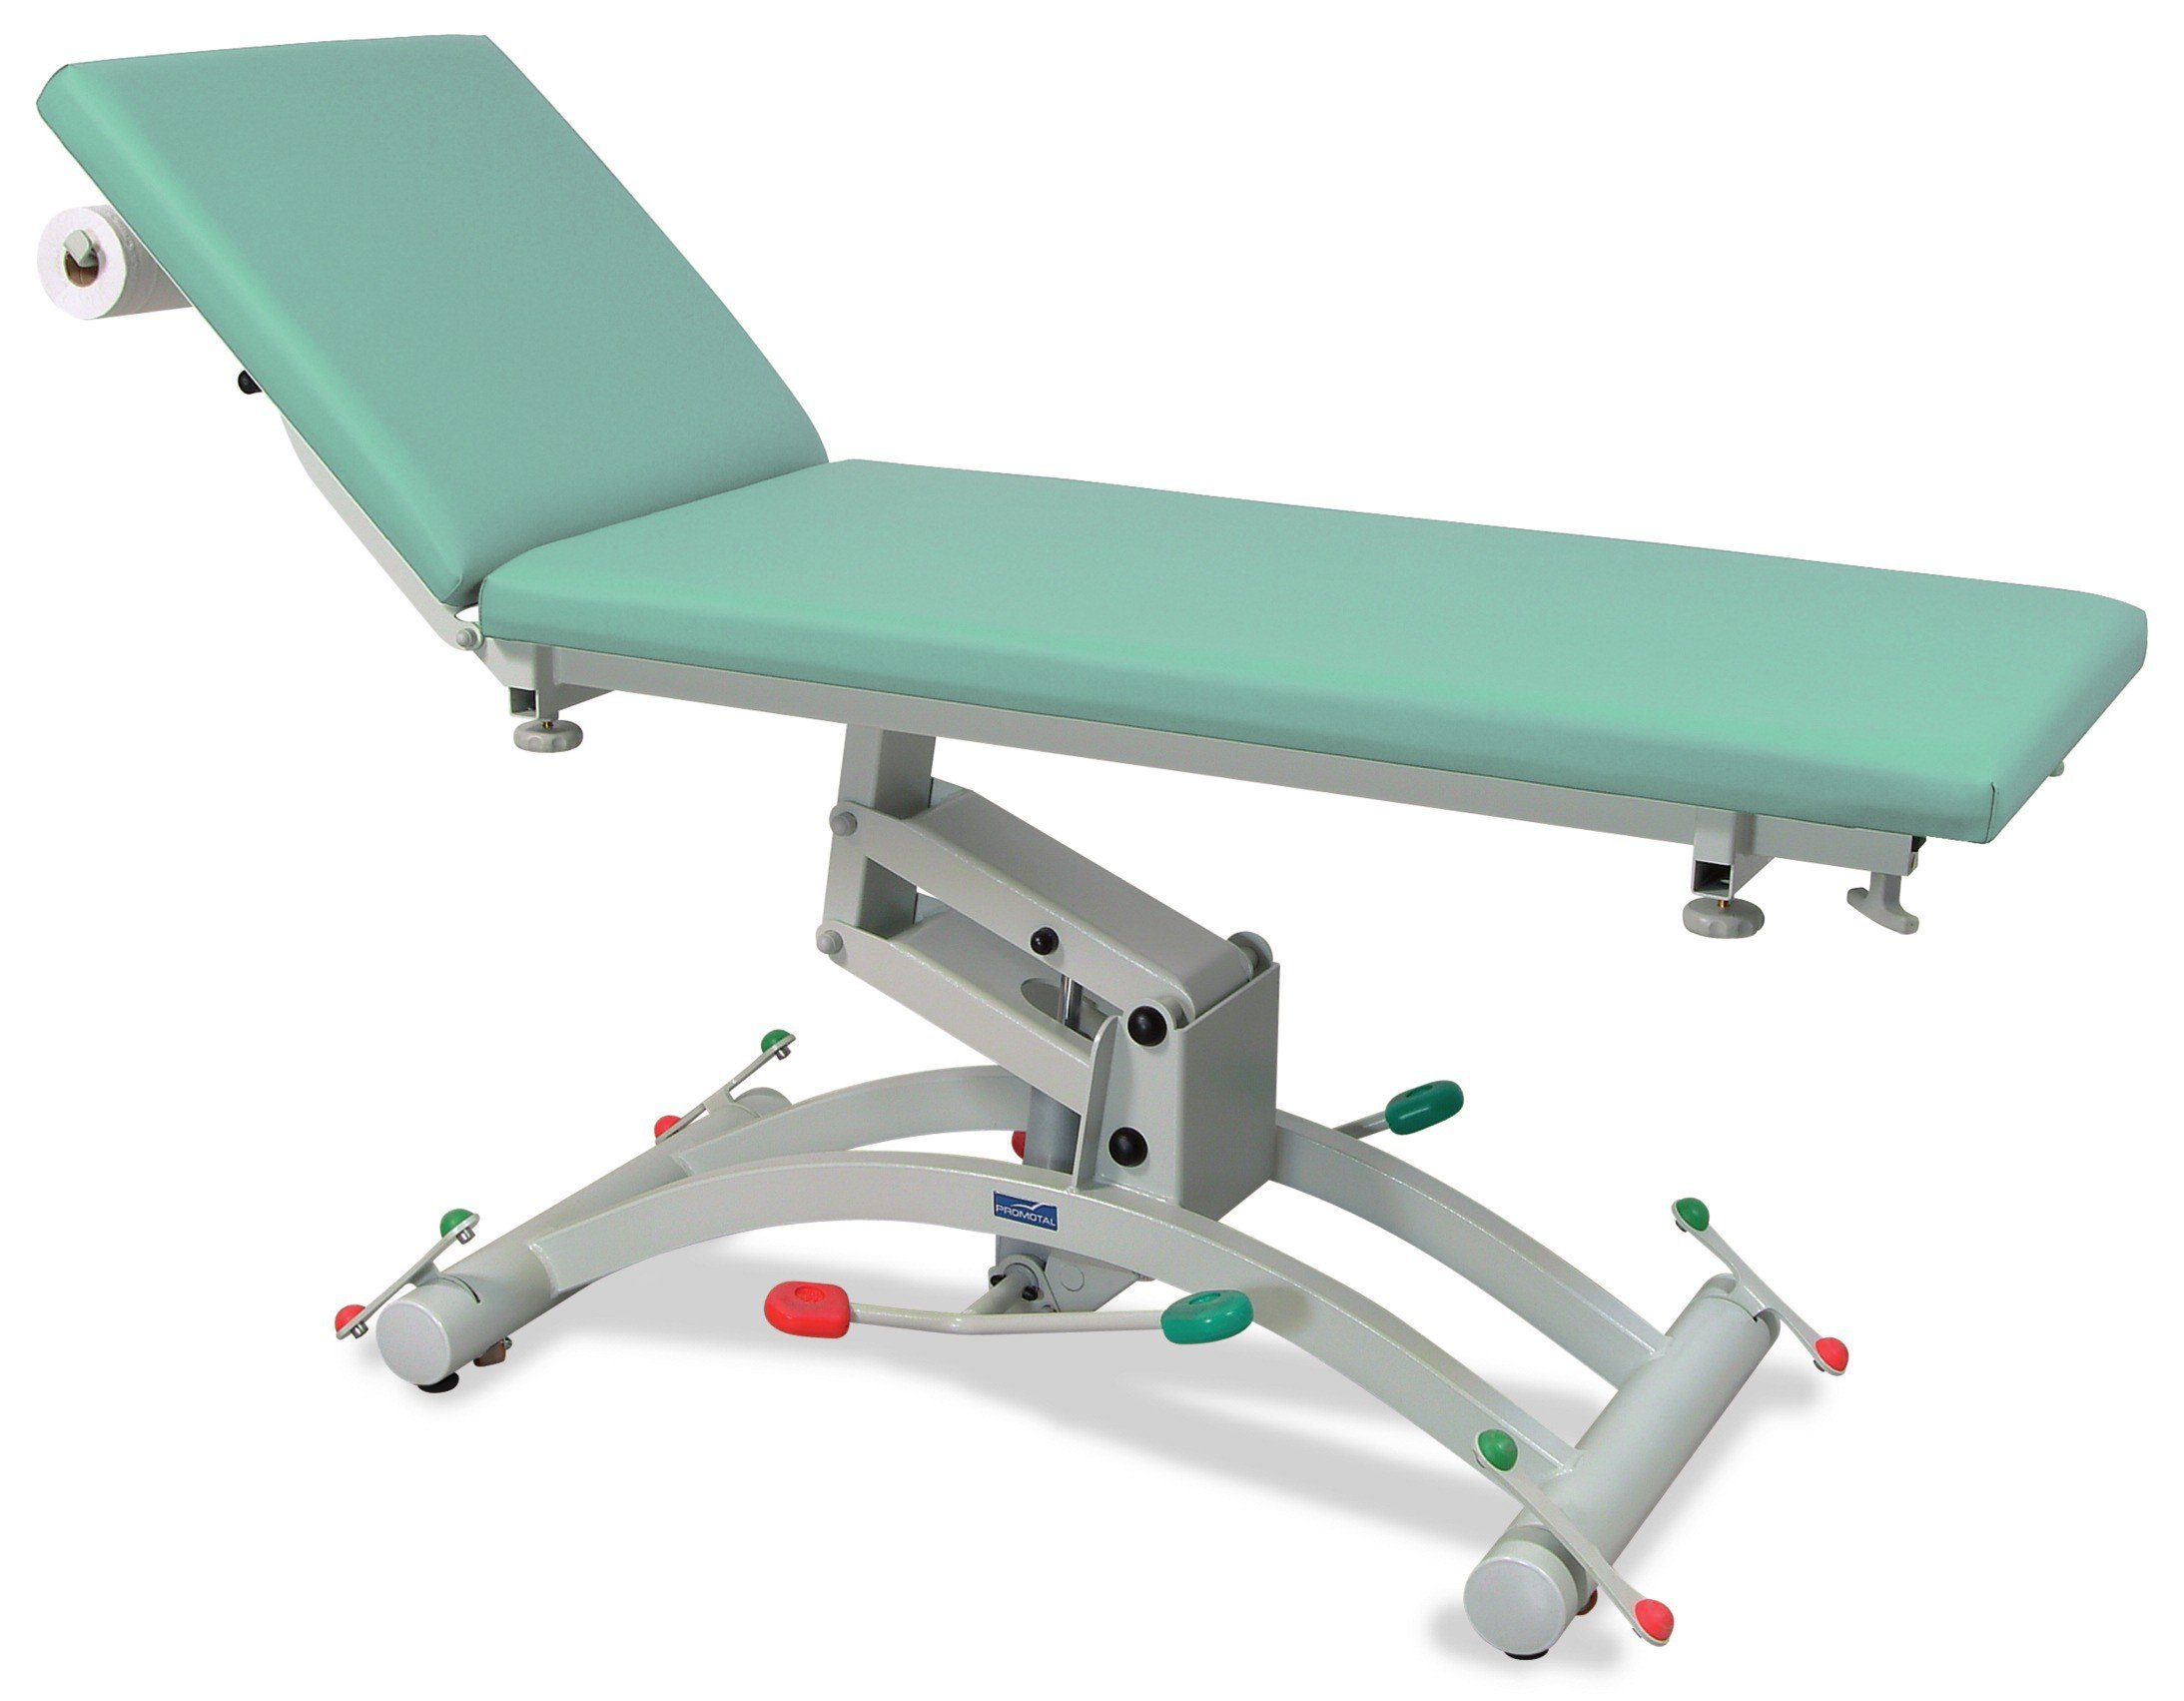 TABLE DE MASSAGE HYDRAULIQUE